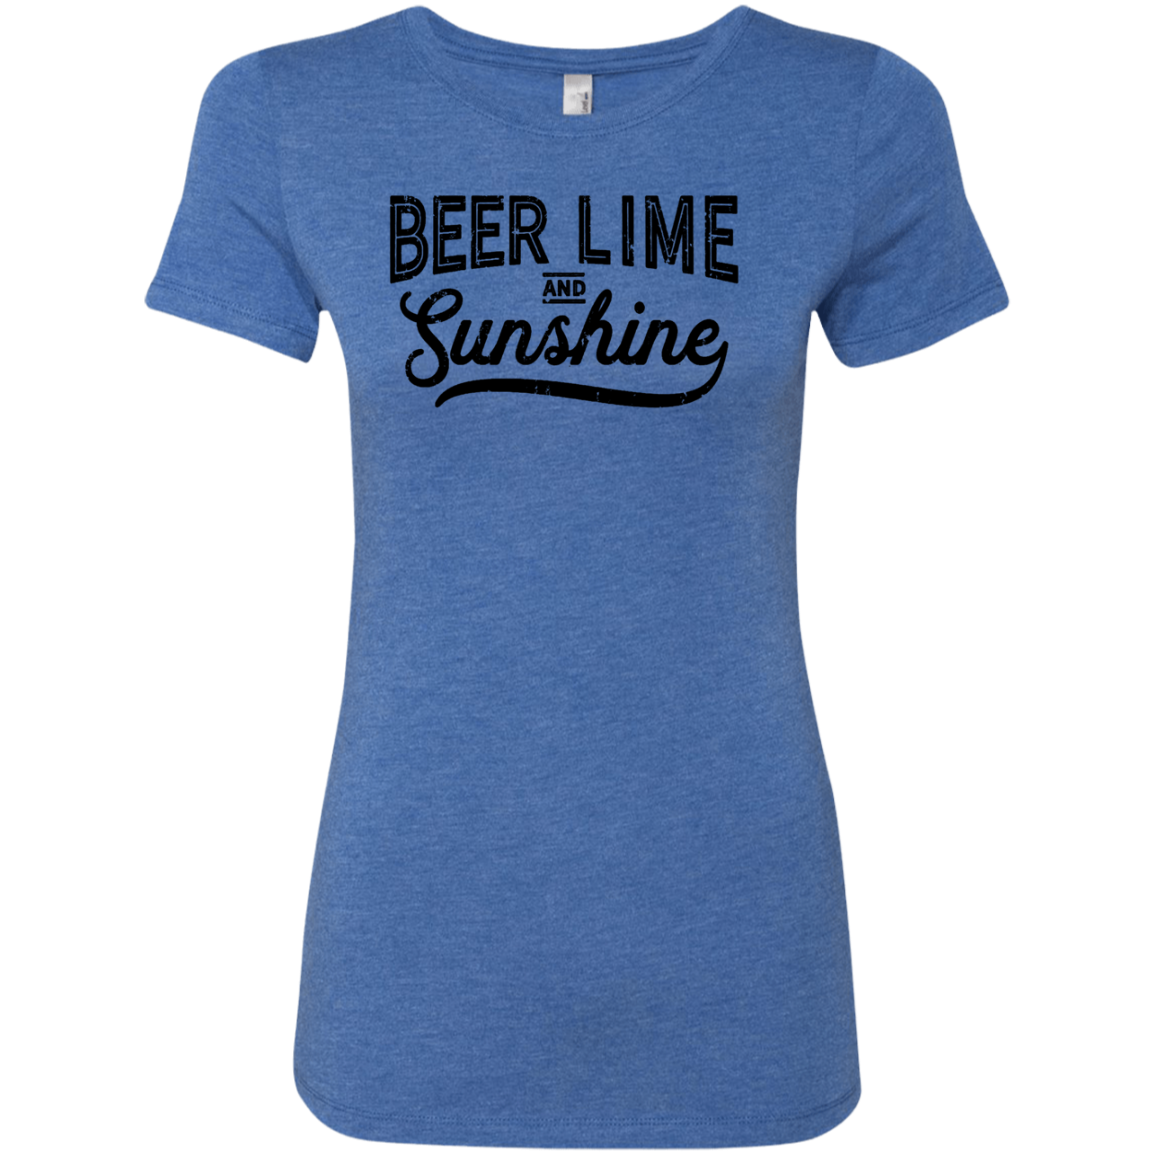 Beer Lime and Sunshine Women's Classic Tee - Trendy Tees